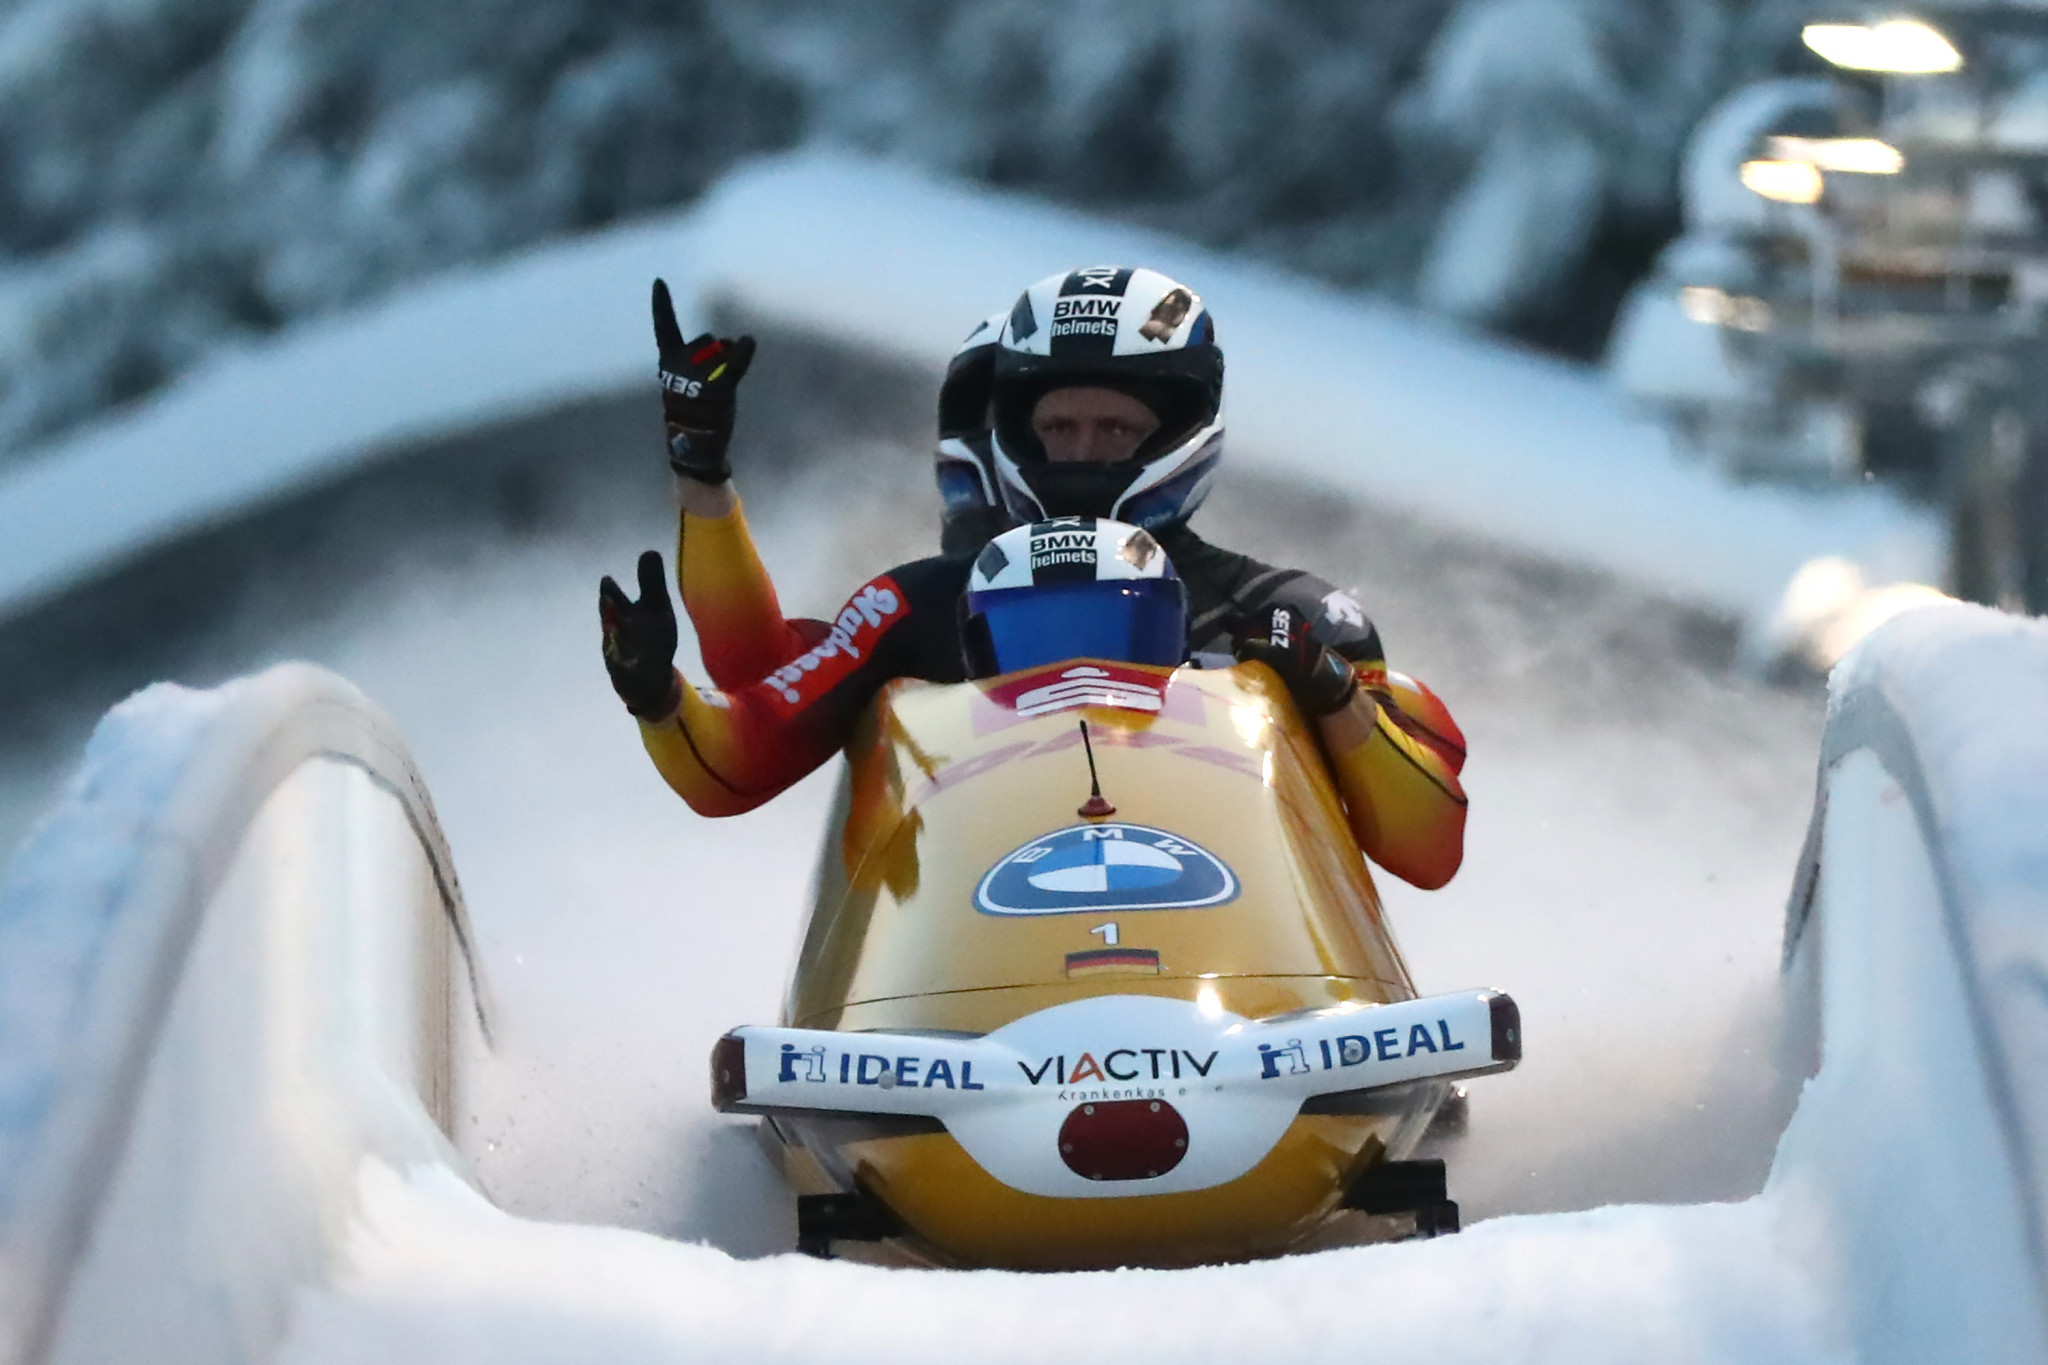 Veteran Rödiger joins Olympic champion Friedrich's bobsleigh team for coming season